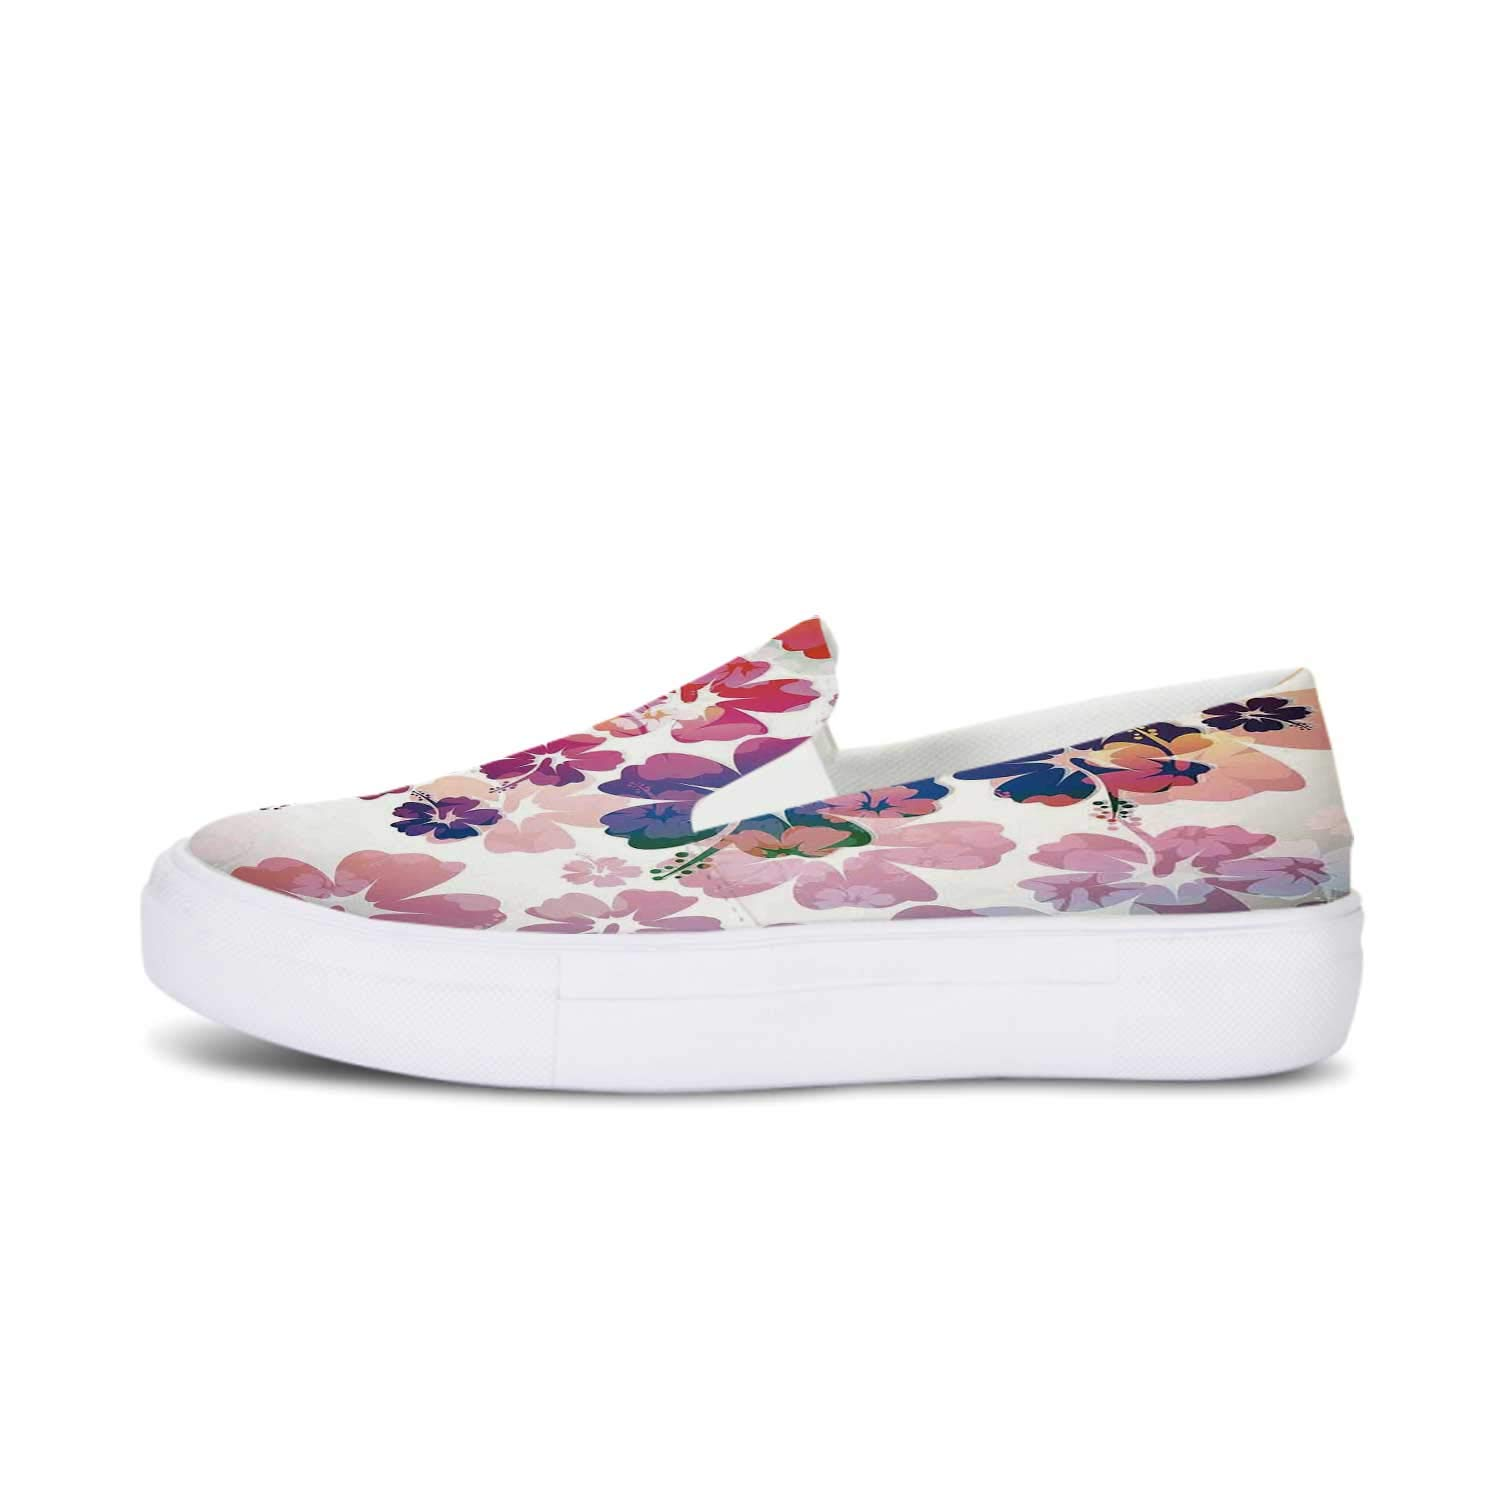 Ocean Decor Canvas Slip On Shoes,Relax Beach Resort Spa Palm Trees and Sea for Women,US 5